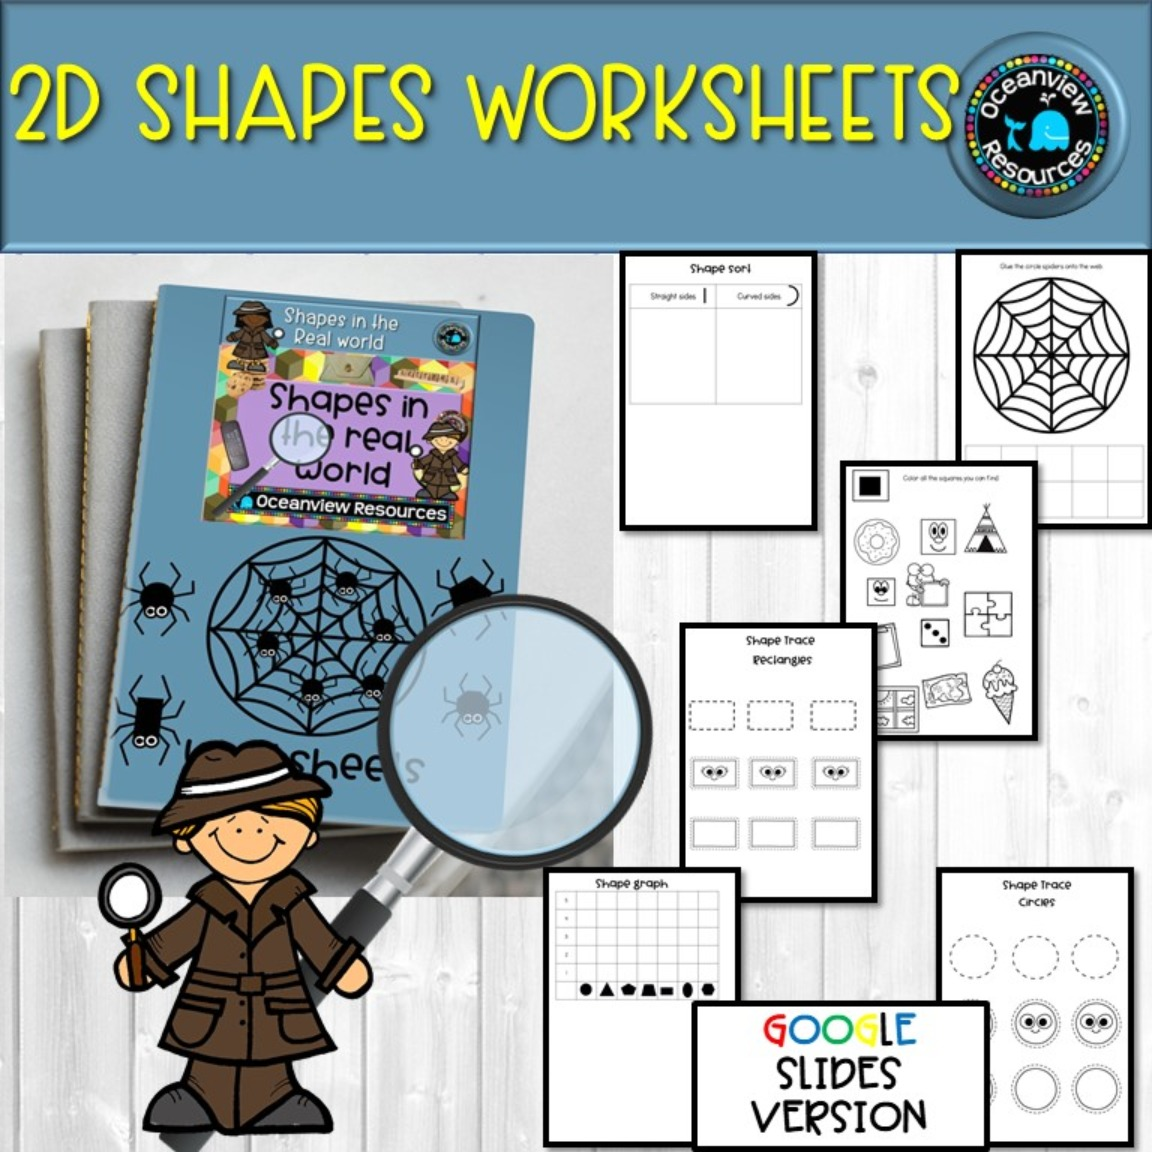 2D worksheets - UK and AUS/UK spelling GOOGLE version